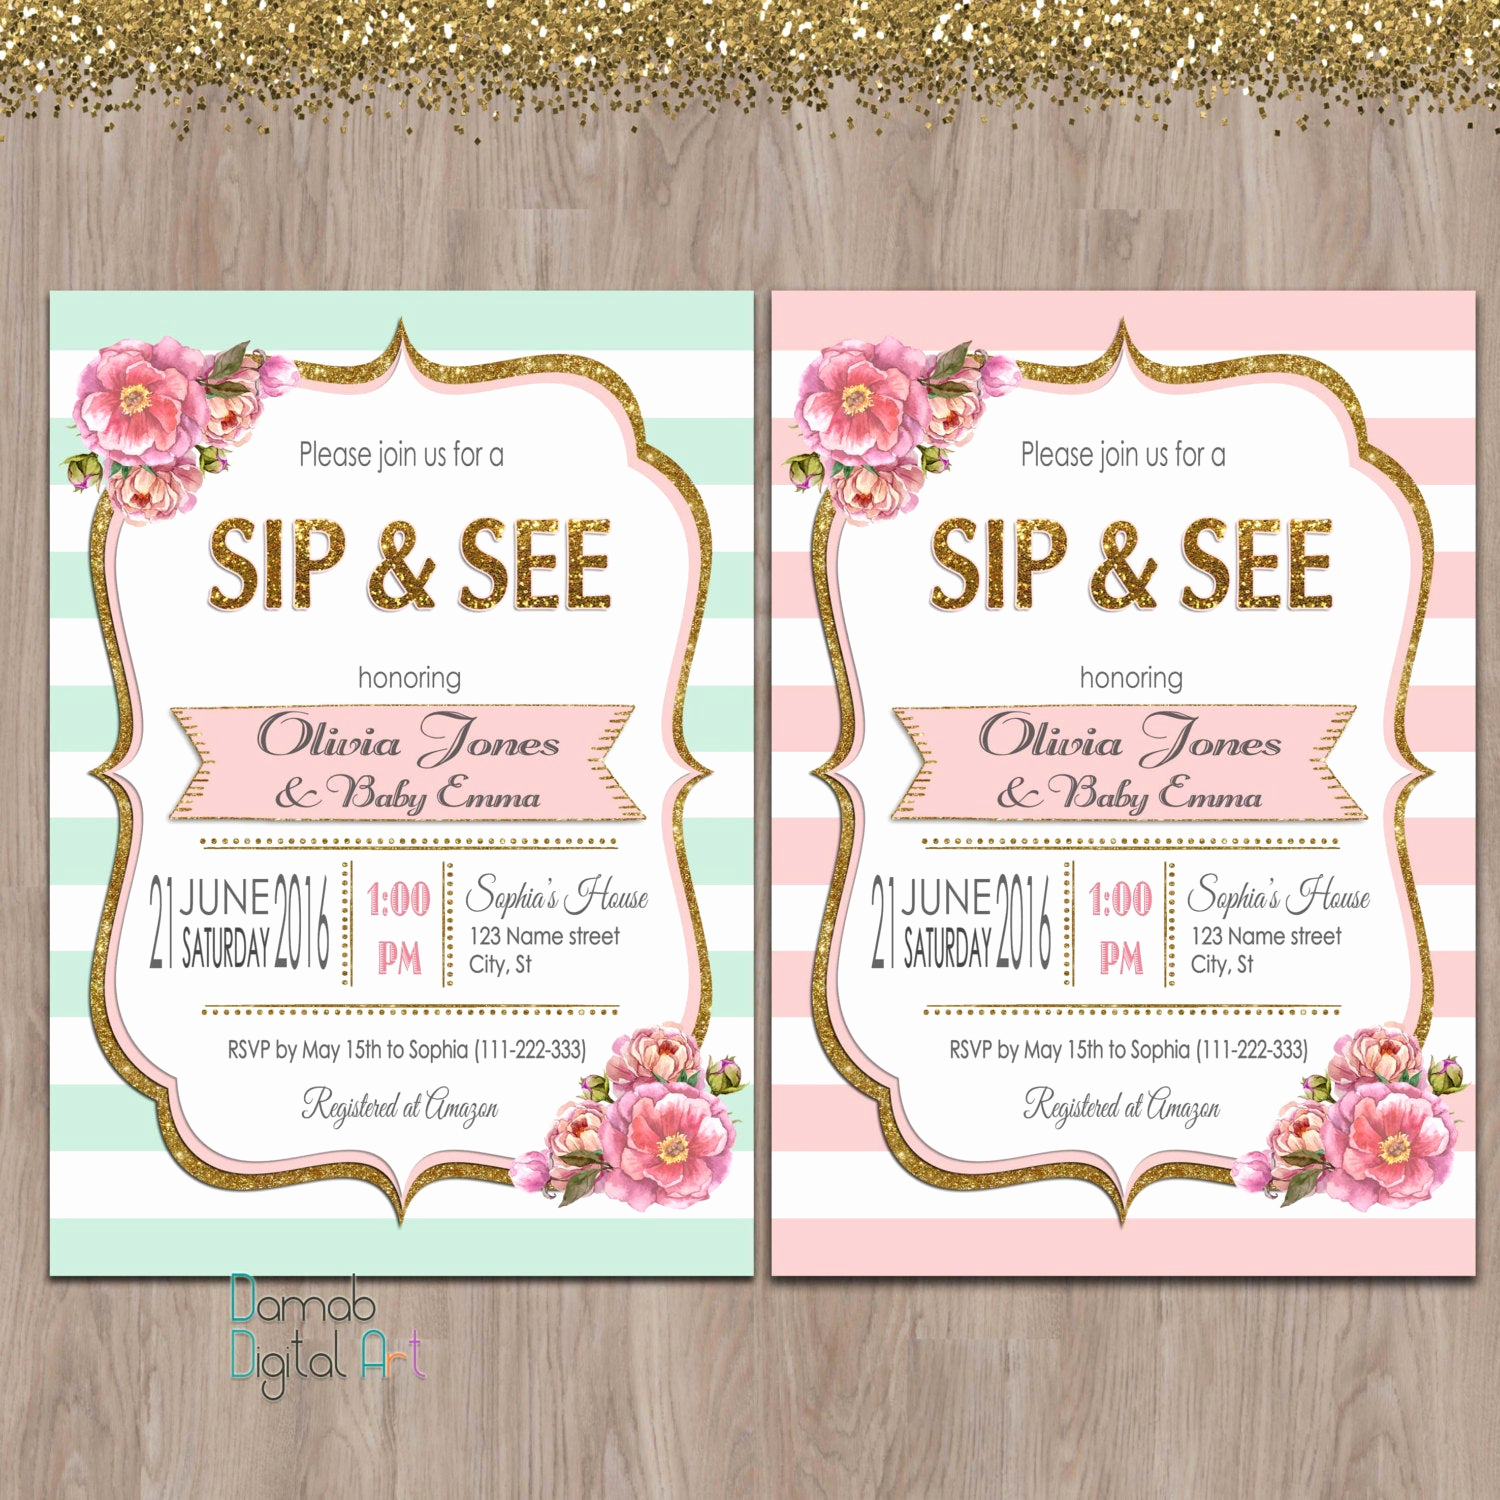 Sip and See Invitation Wording Inspirational Sip and See Invitation Girl Sip & See Invitation Meet the